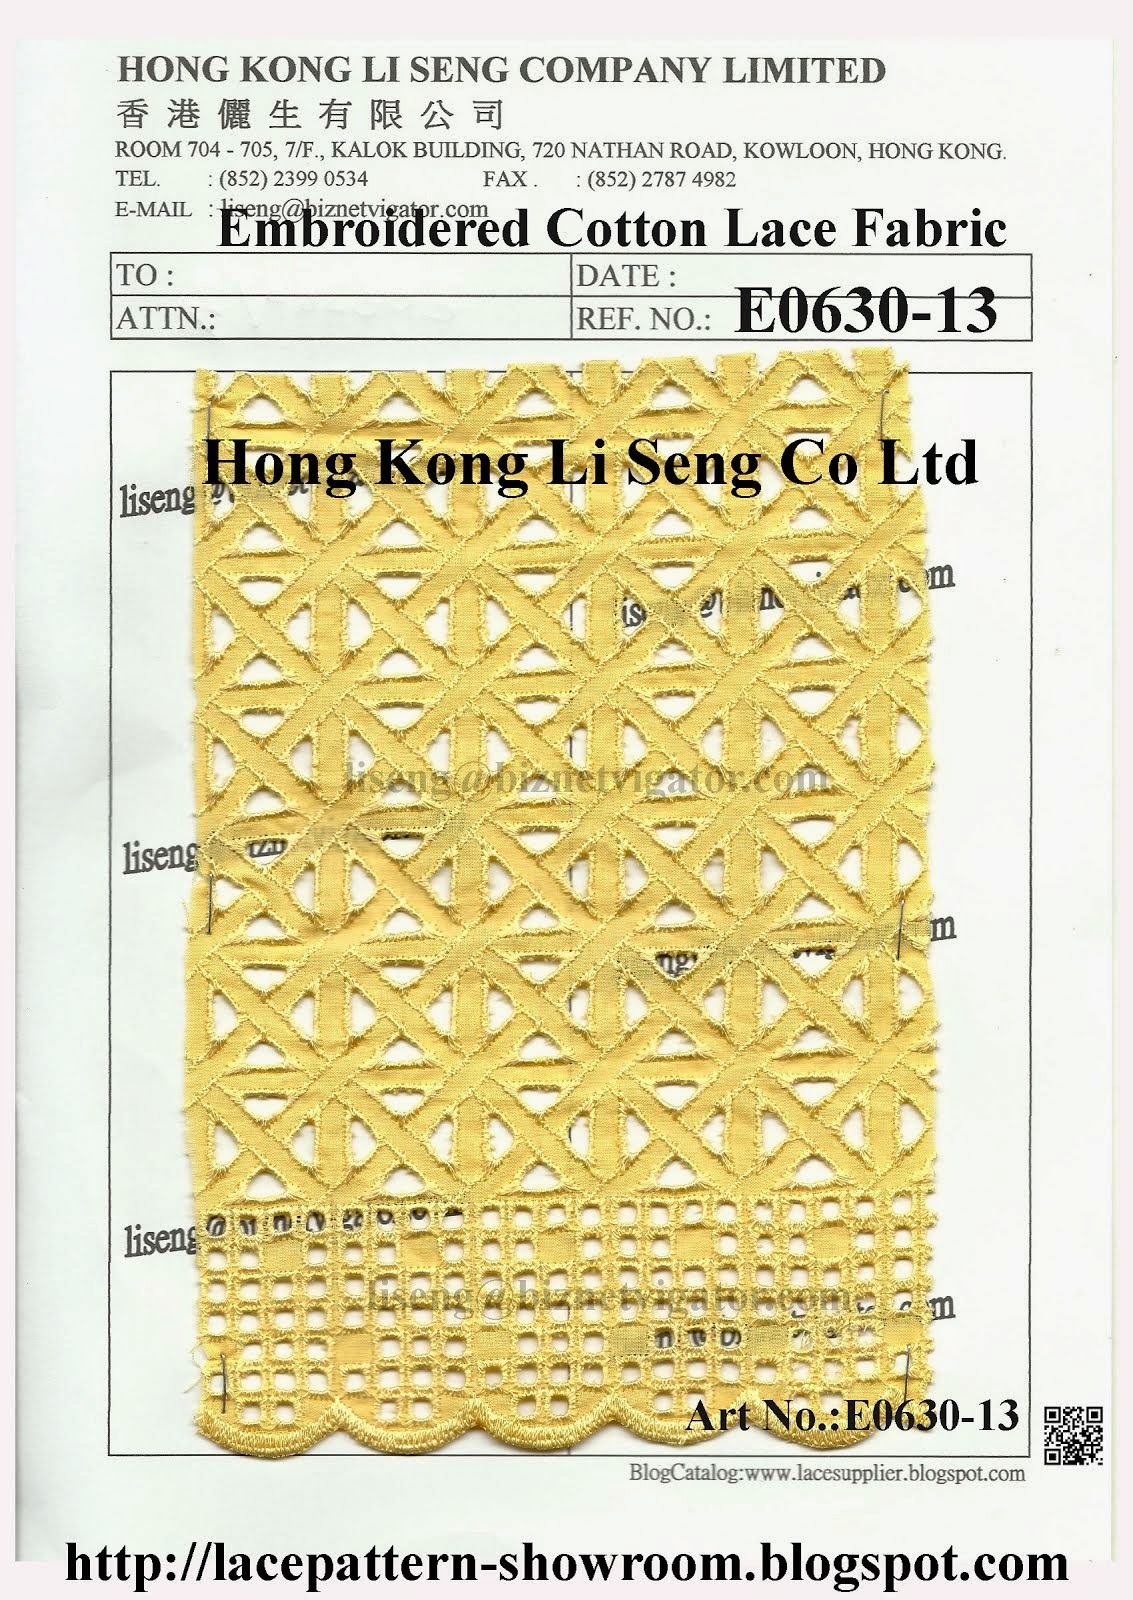 New Pattern Emb Cotton Lace Fabric Manufacturer Wholesaler Supplier - Hong Kong Li Seng Co Ltd